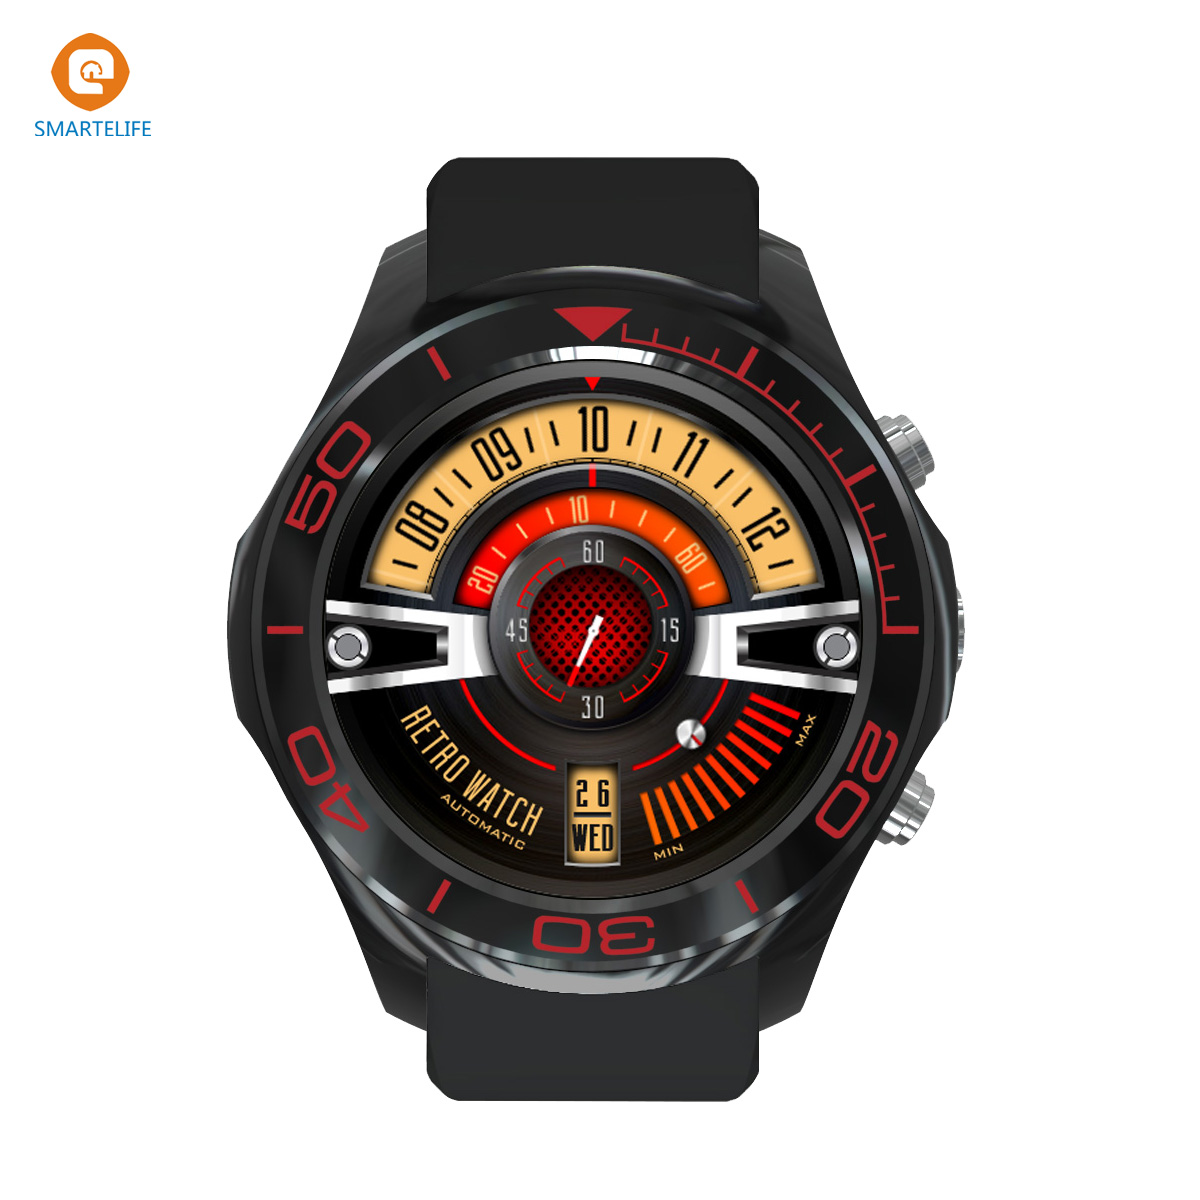 SMARTELIFE Android 3G Smart Watch Phone with WIFI Bluetooth Camera Dual-core GPS Heart Rate Monitor Wearable Devices Smartwatch uwatch bluetooth smart watch wristwatch with gps pedometer smartwatch wearable devices for android phone relojes inteligentes